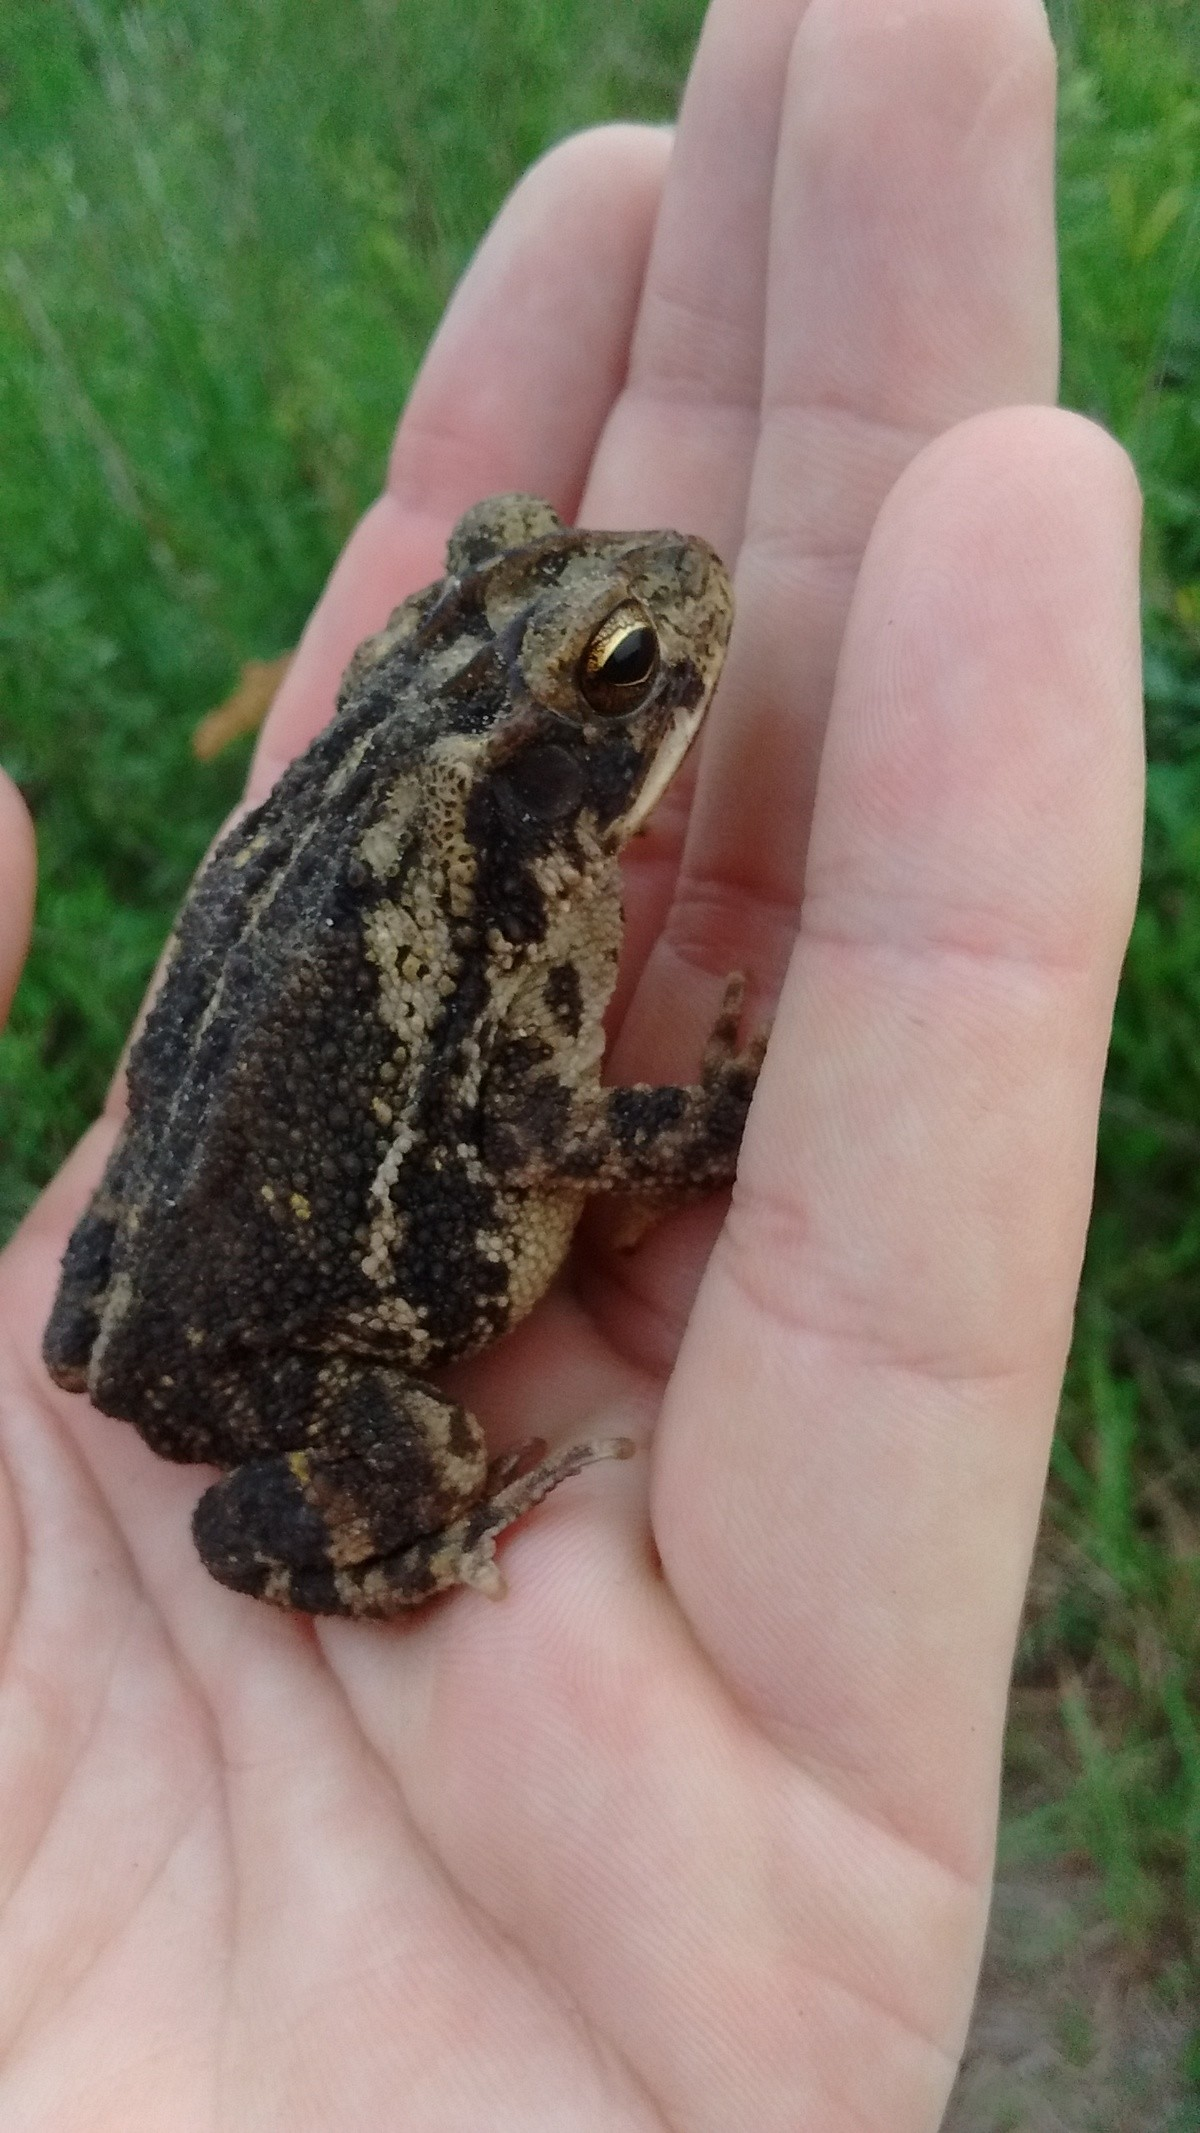 More frogposting. Technically a toad Bufo americanis Toads are cute.. The toads down here in Texas have wider/flatter, more toad-like faces. I love catching em for and giggles.